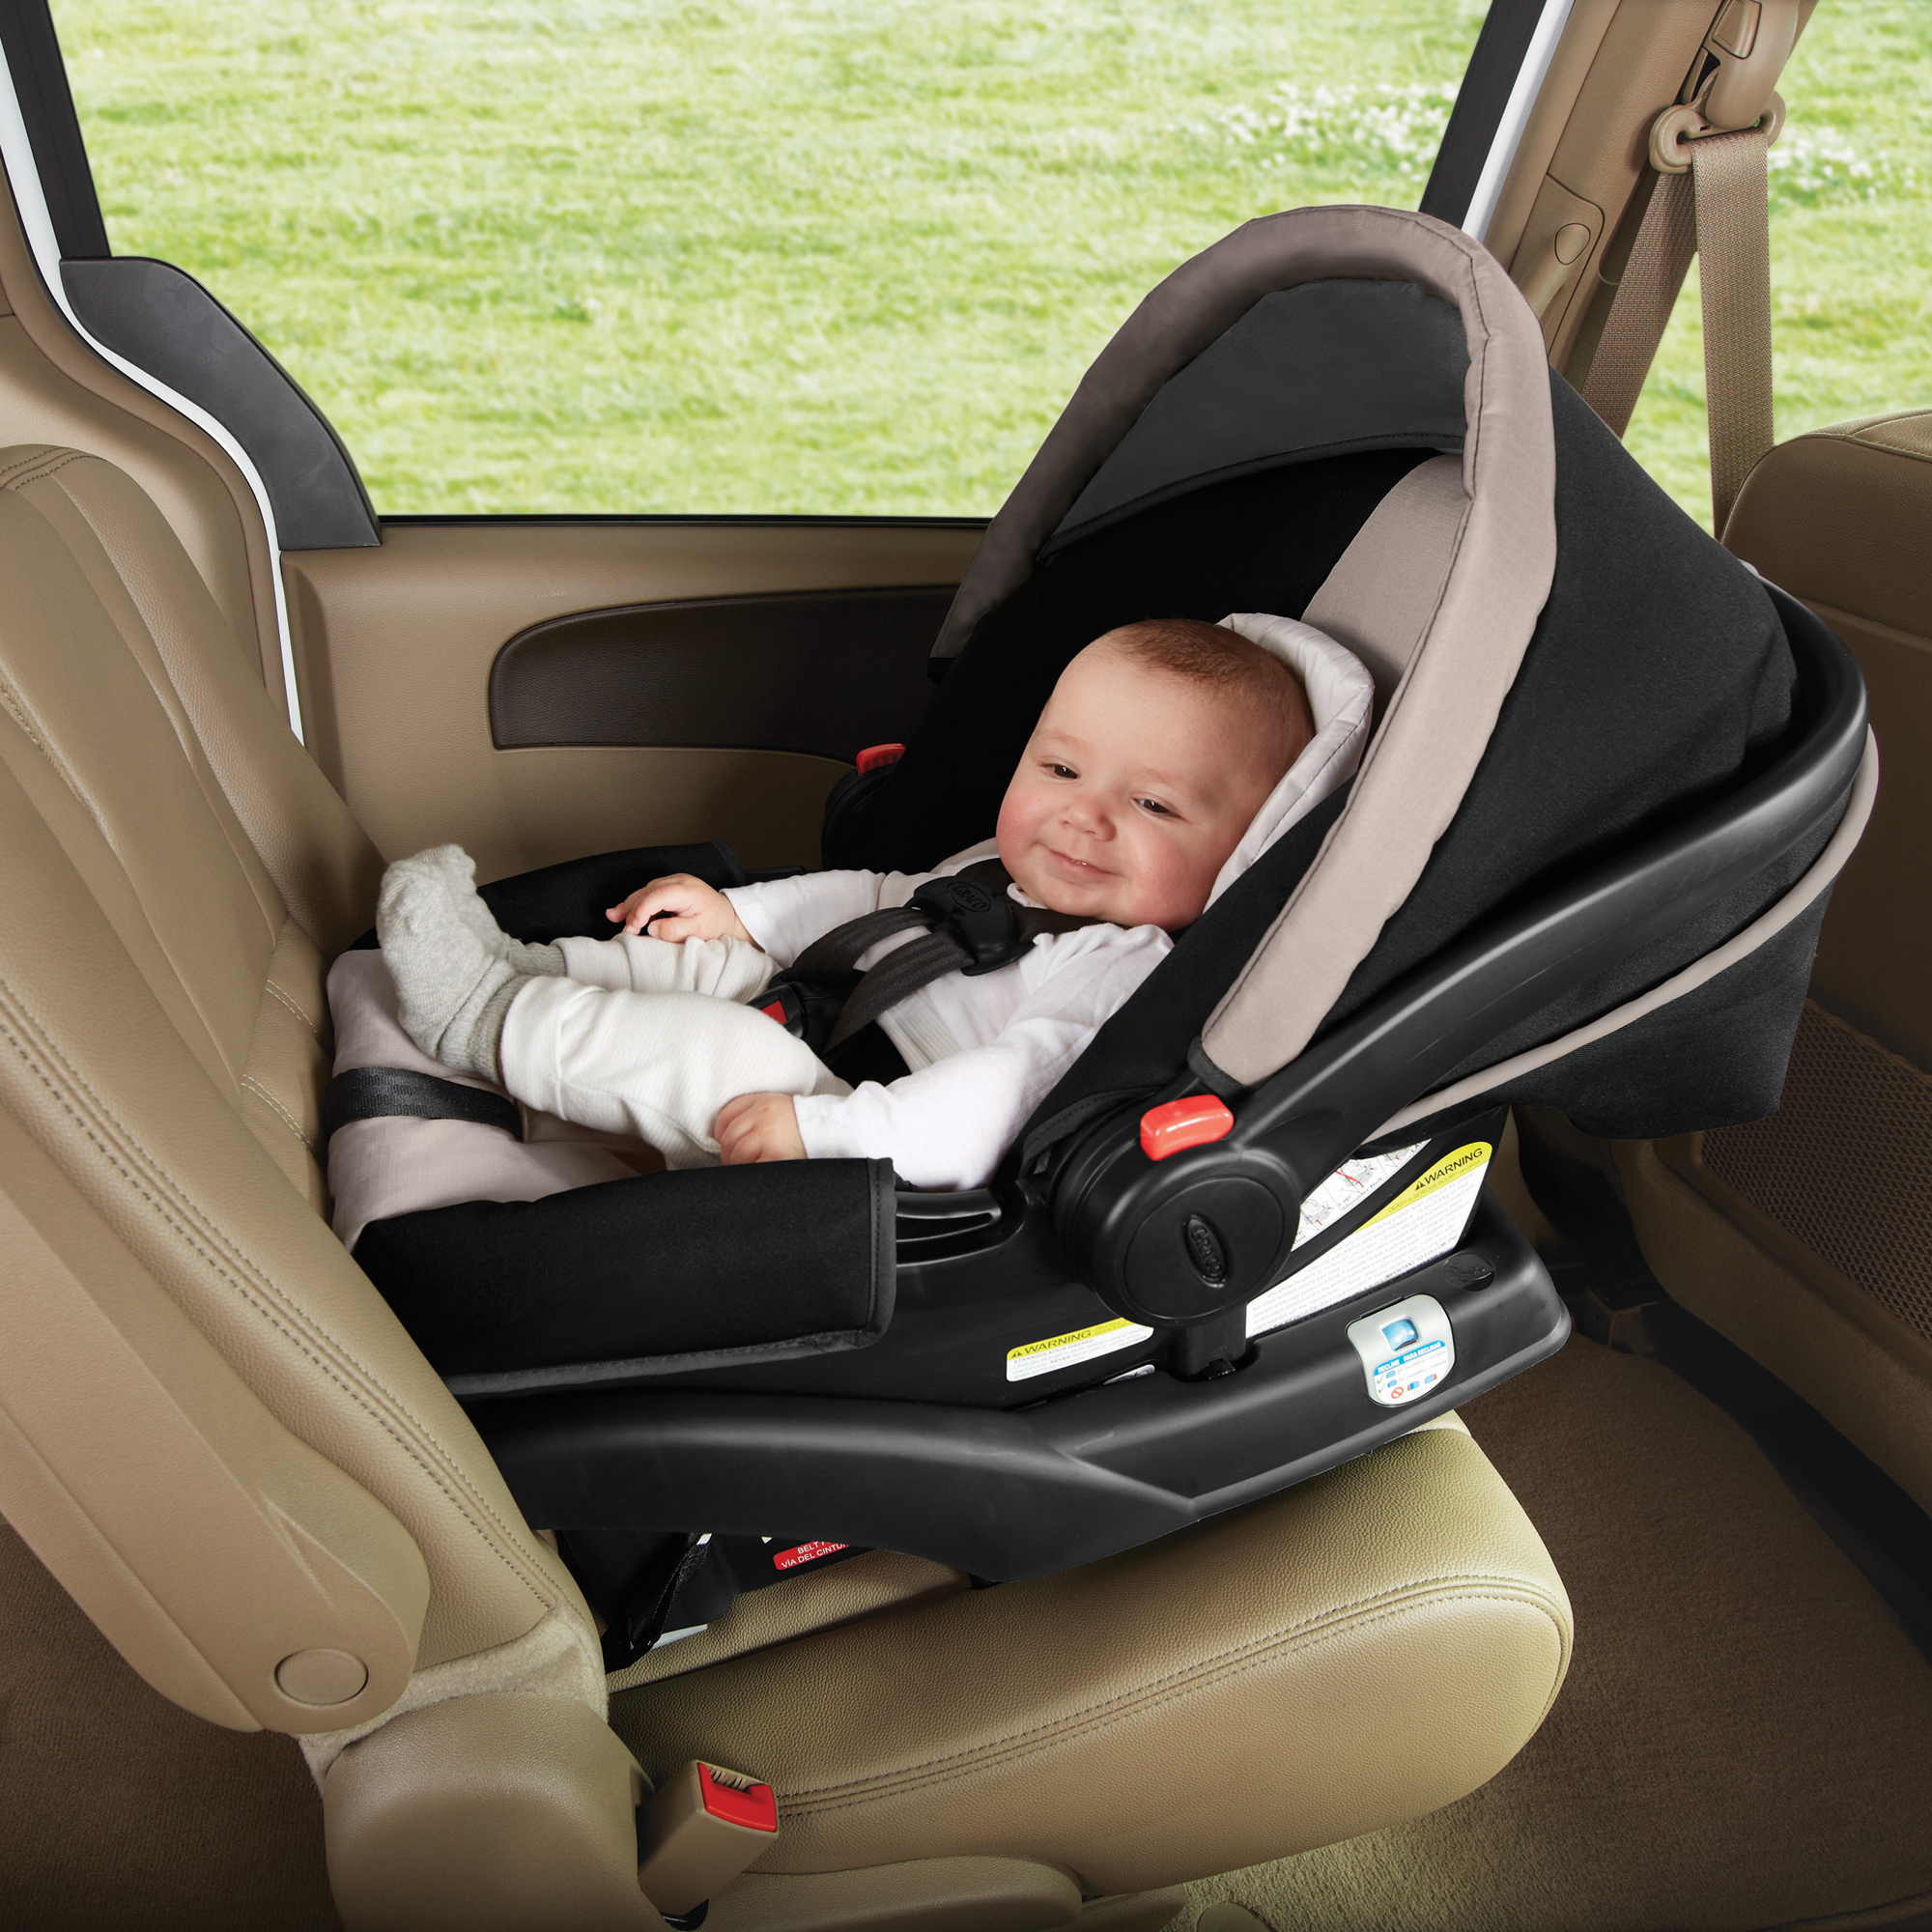 Recommended Child Car-seats, Restraints and Seat-belts - Craft-O-Maniac